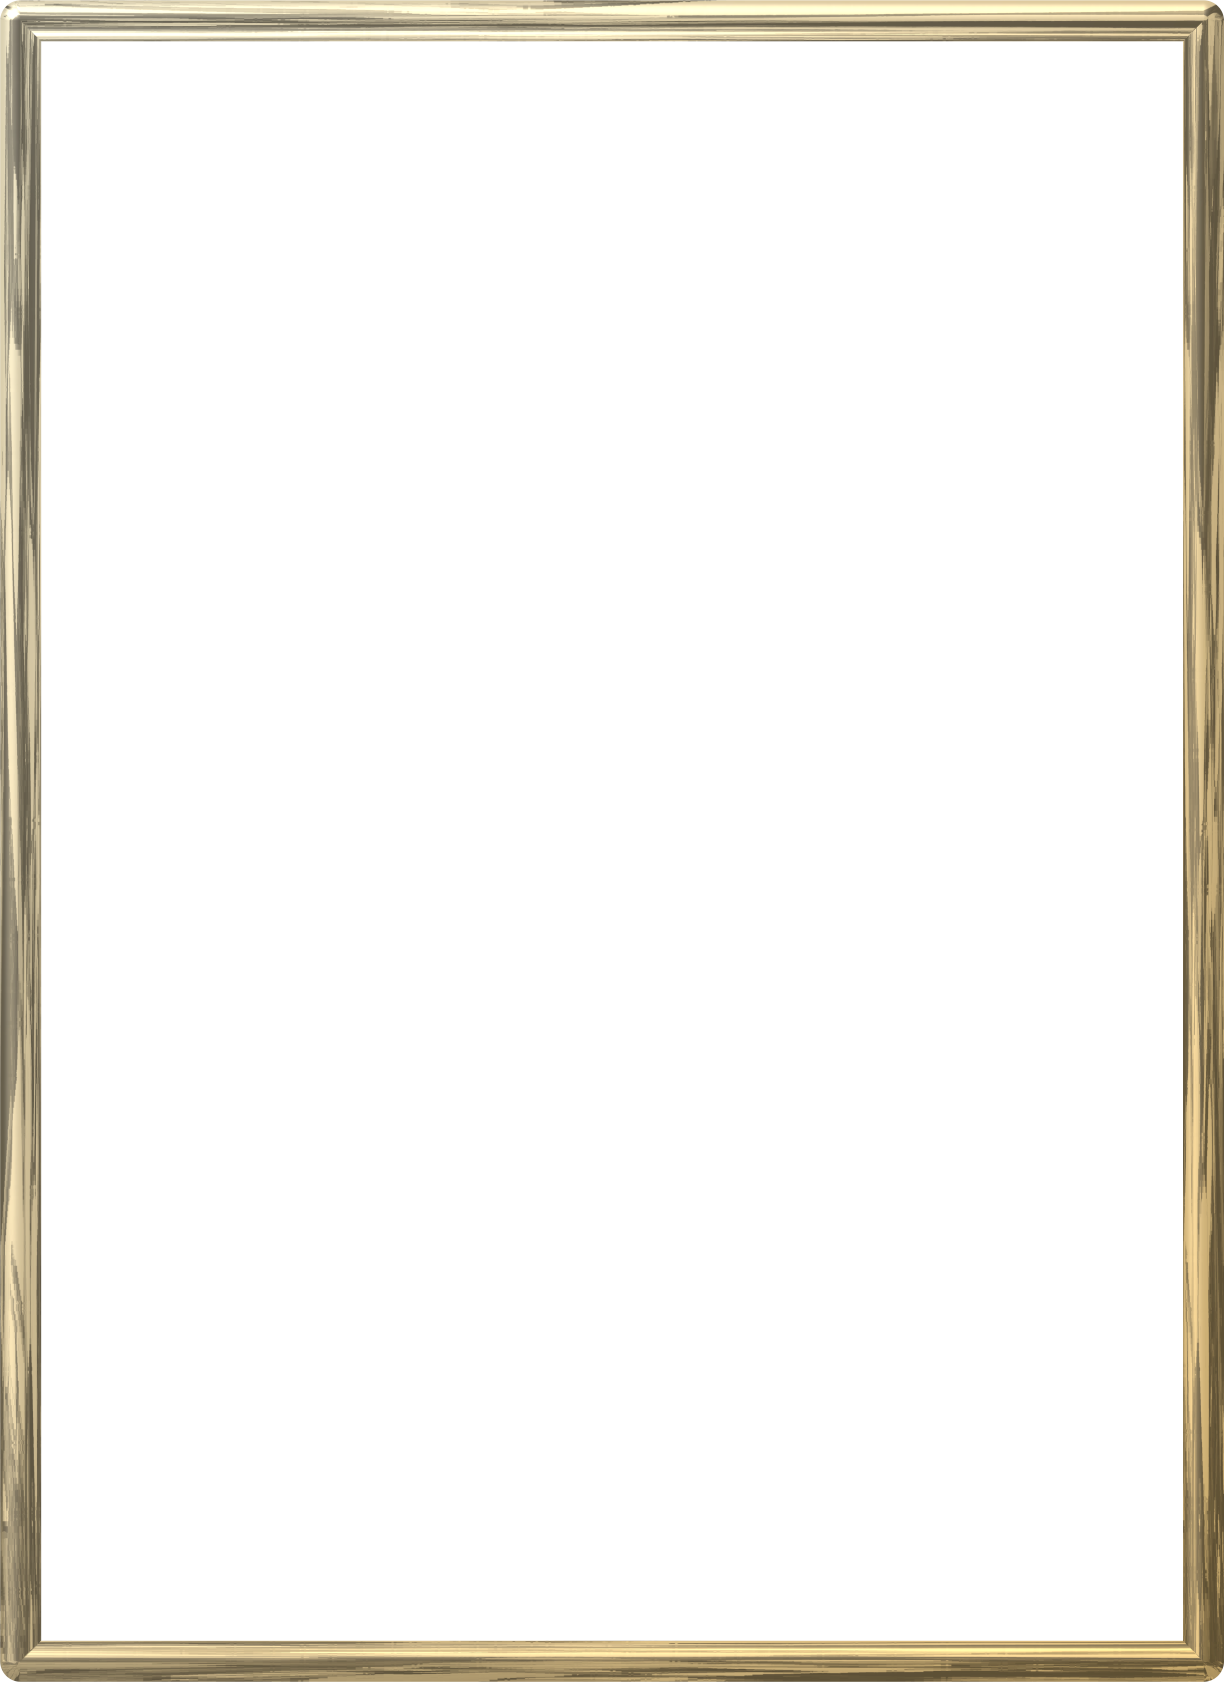 Frame photo mart. Gold border png